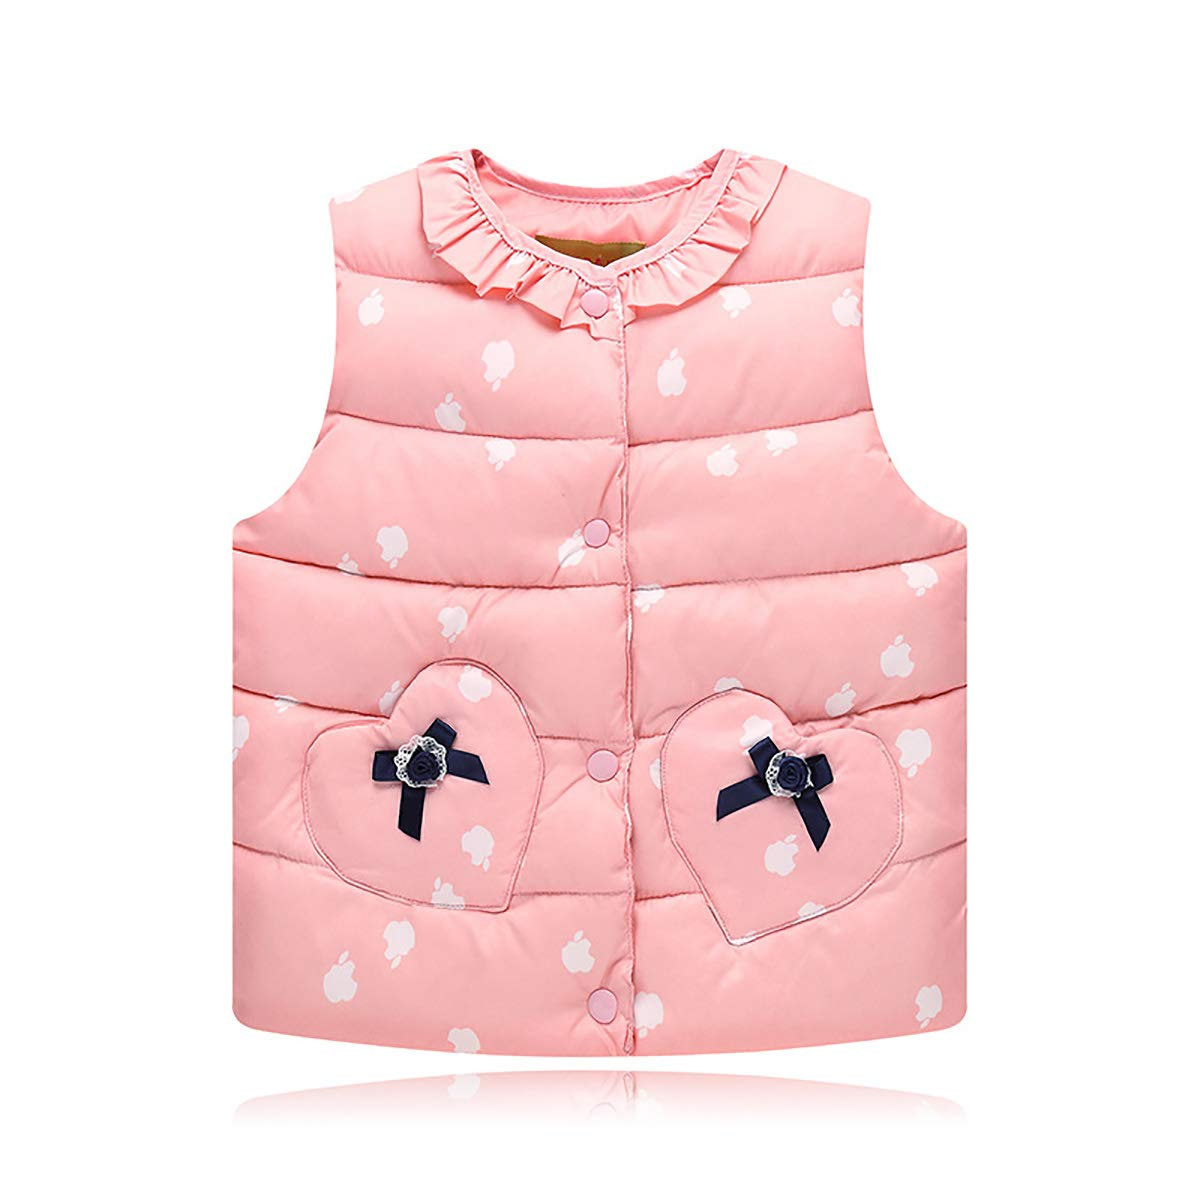 FASH Baby Girls Warm Vest Sleeveless Jacket, Infant Toddler Heart Pattern Waistcoat Kids Autumn Winter Padded Puffer Gilets for 2-7 Years,Pink,120cm by FASH